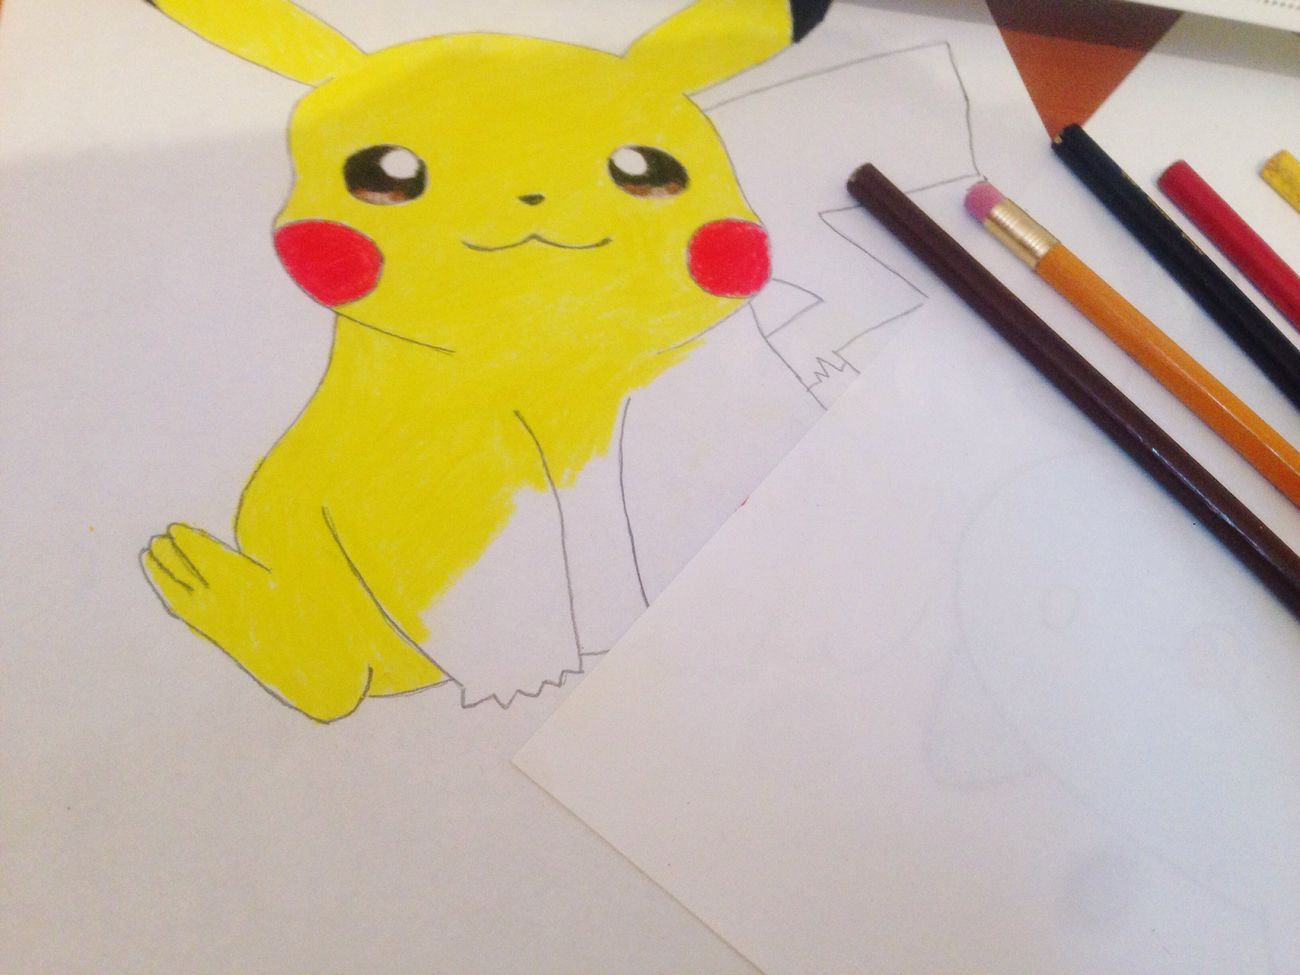 Drawing - Art Product Yellow Paper Music Sweetchildofmine Pikachu